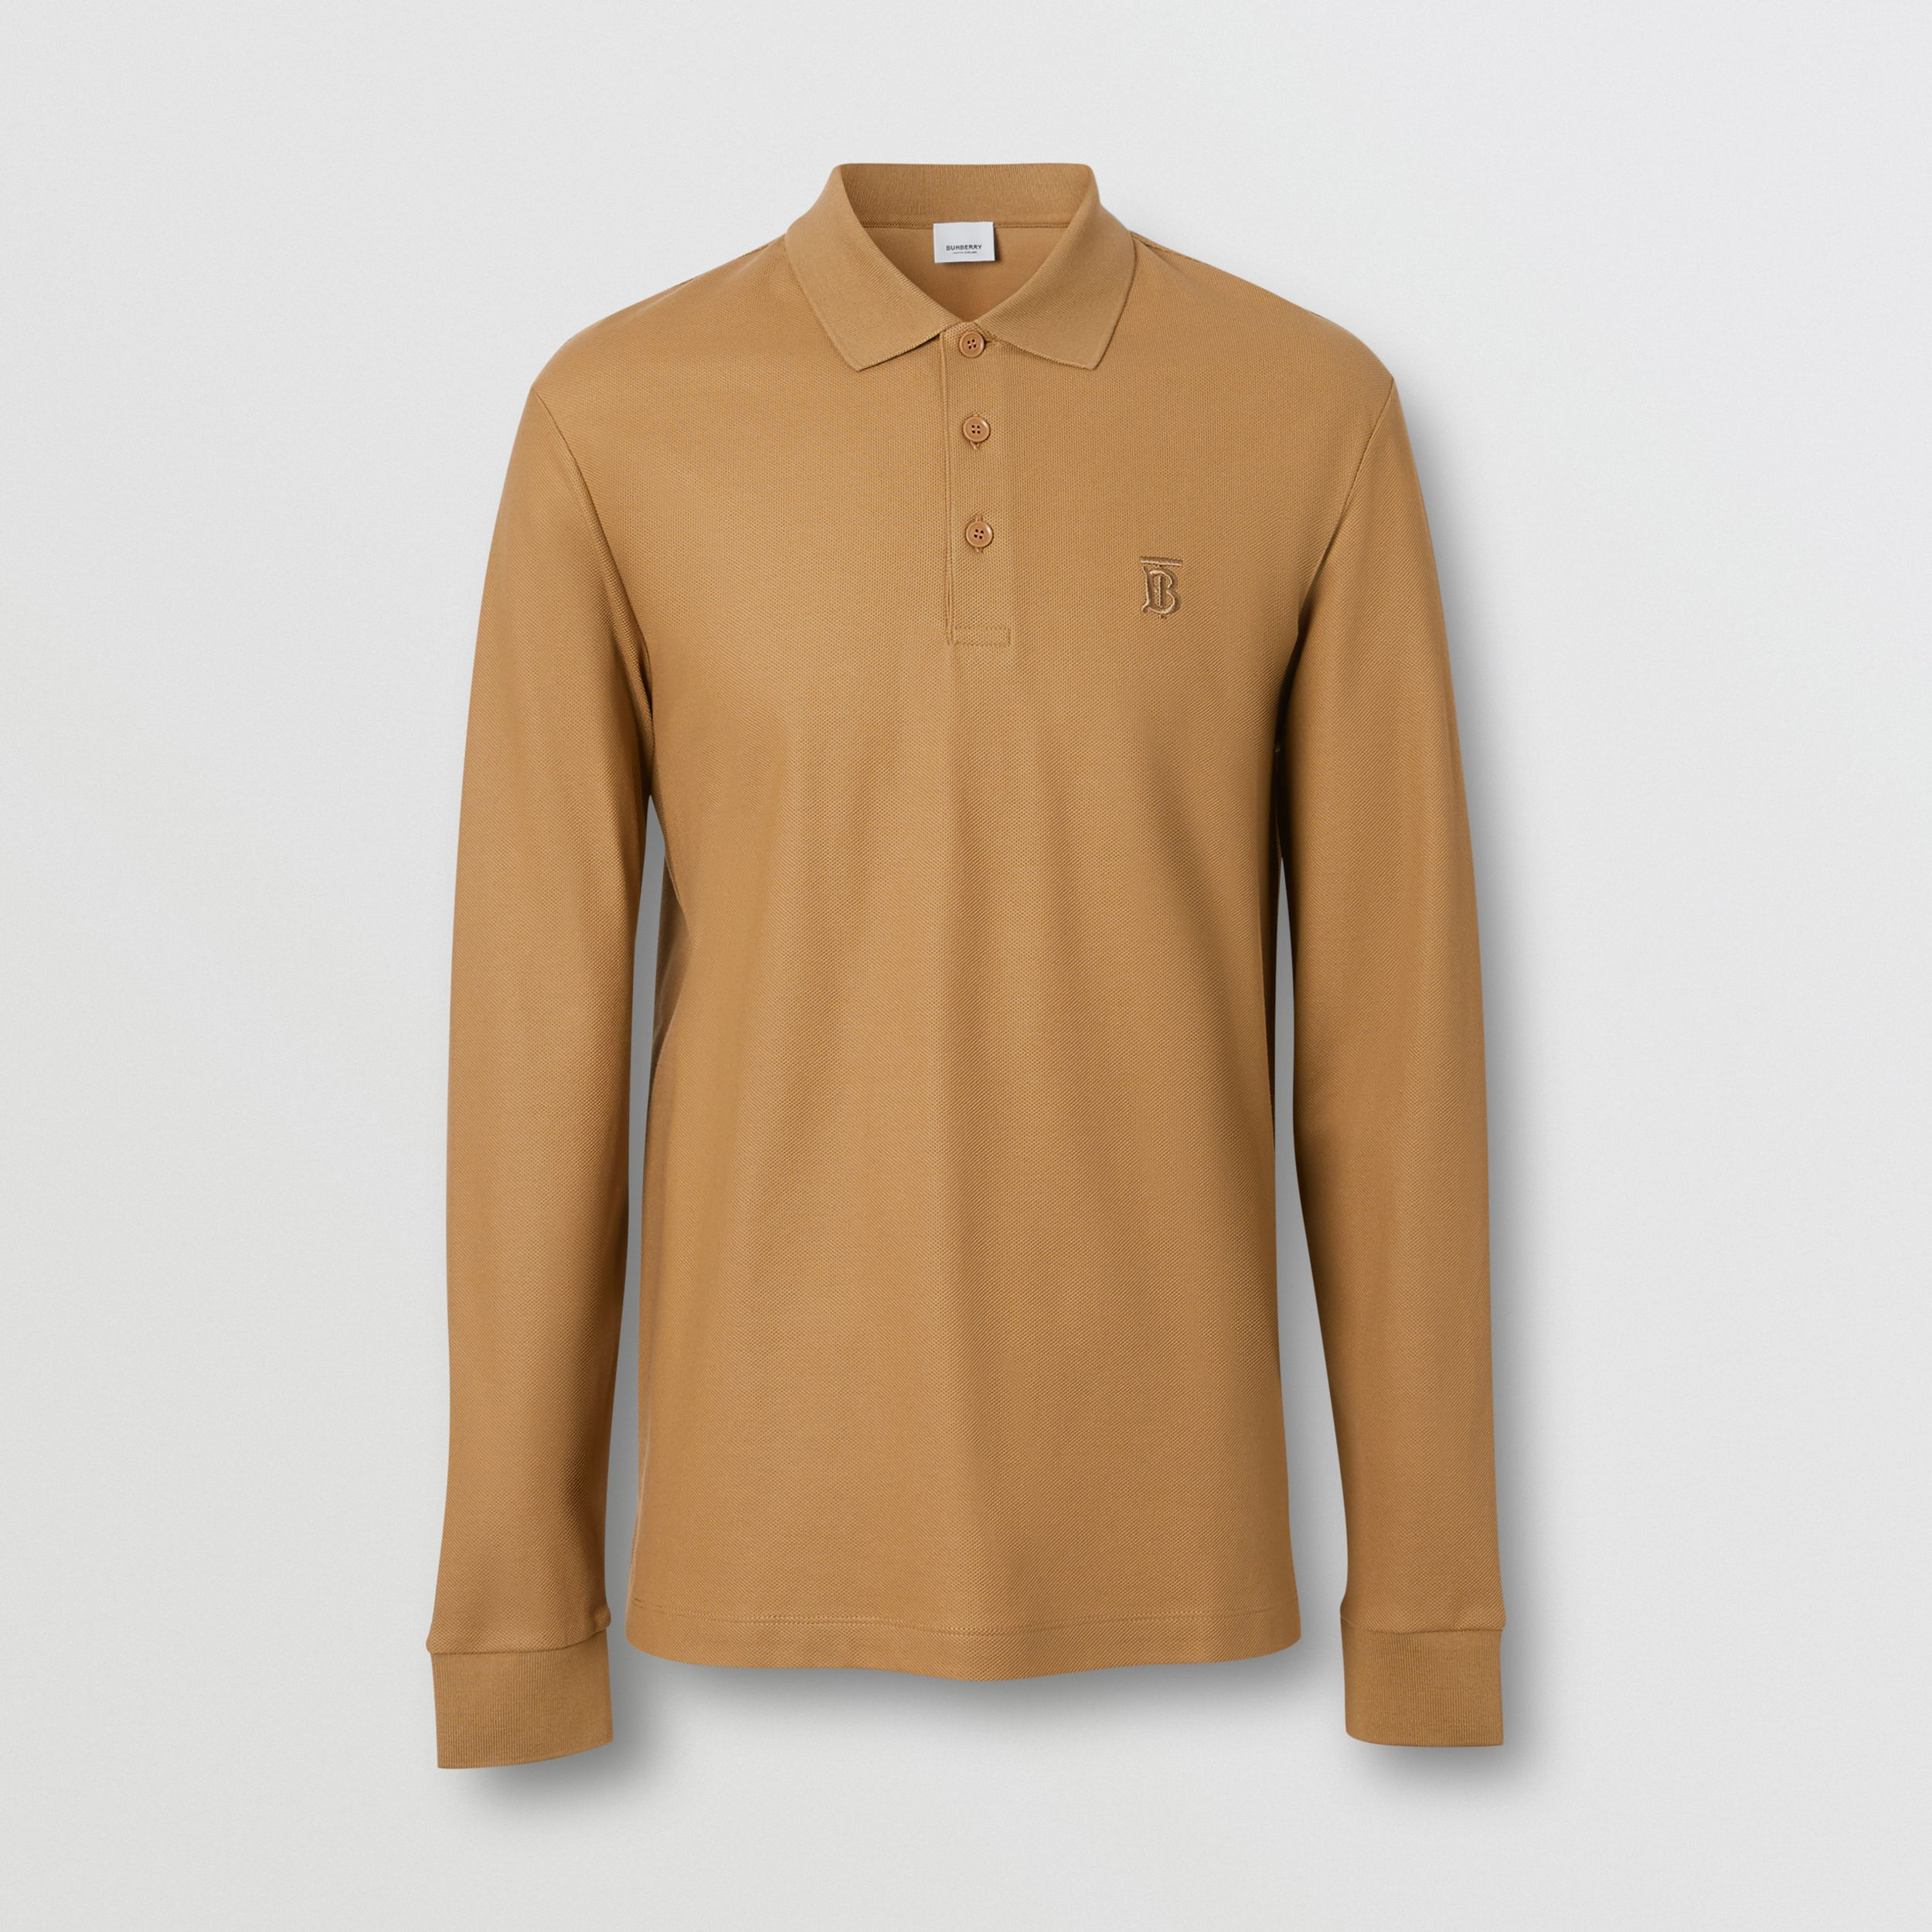 Long-sleeve Monogram Motif Cotton Piqué Polo Shirt in Camel - Men | Burberry - 4